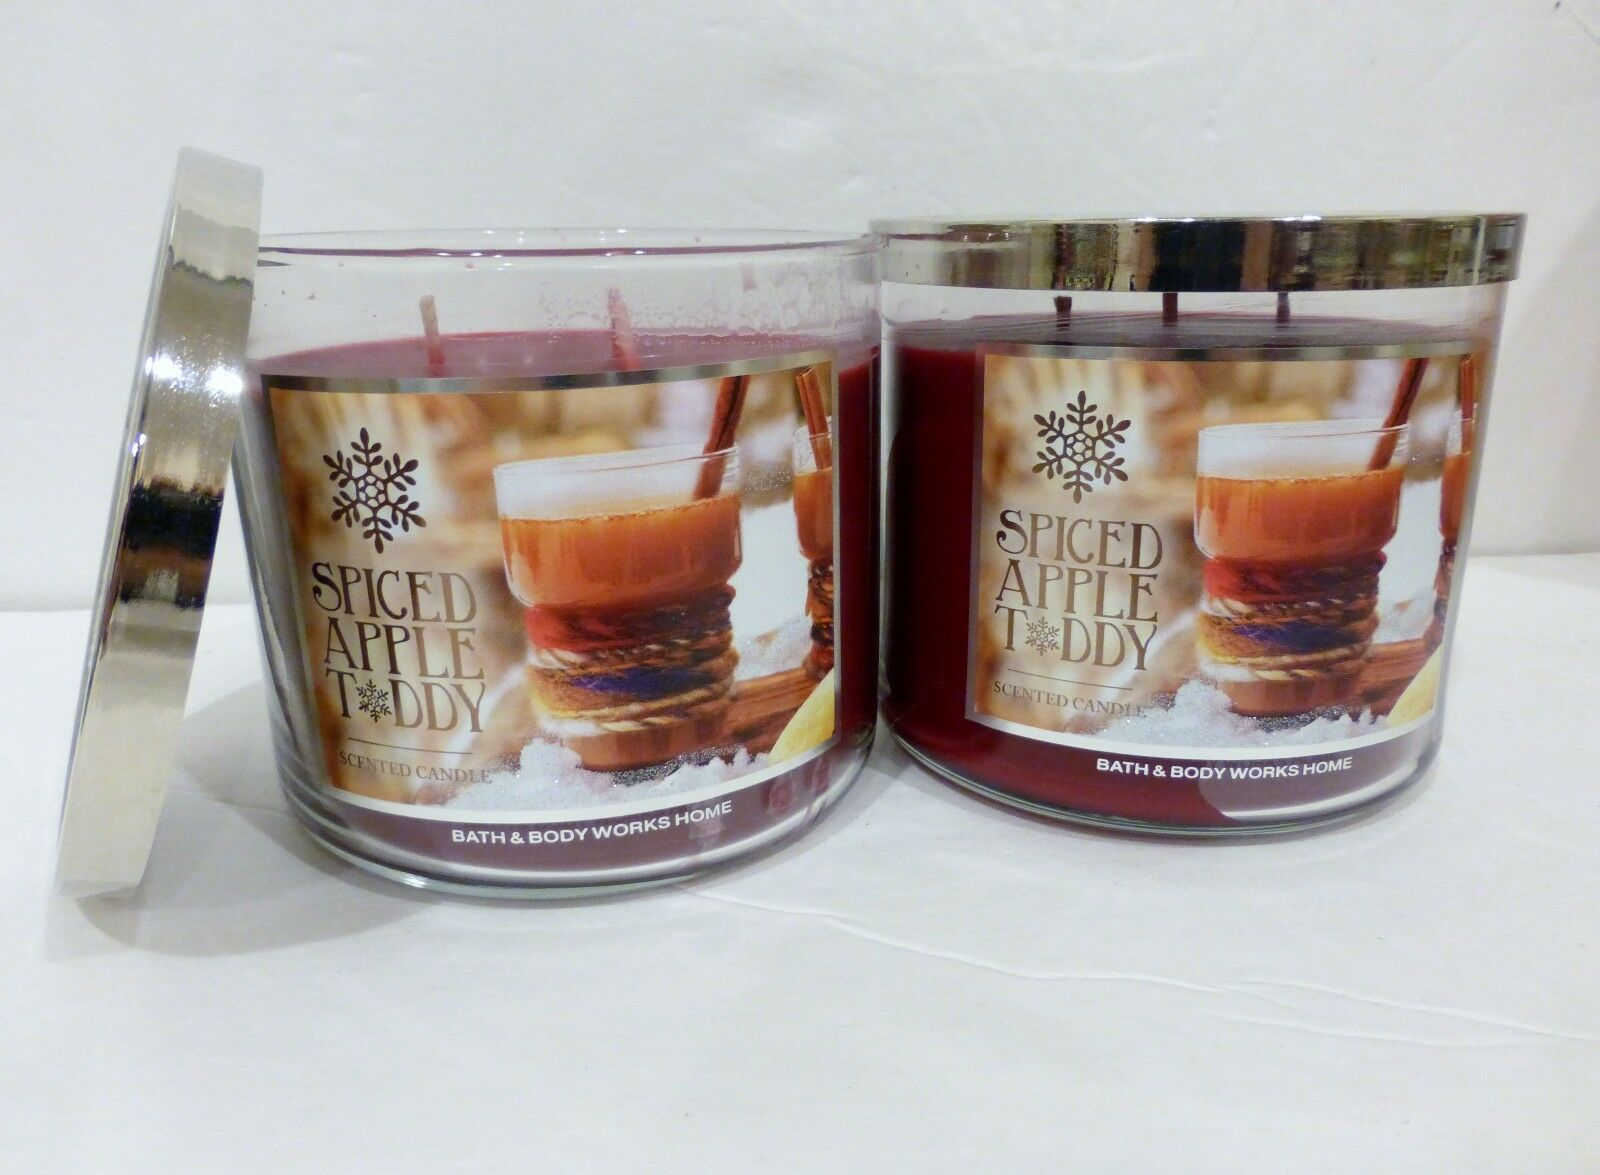 2 Spiced Apple Taddy Bath & Body Works Scented Candle 14.5 Oz NEW